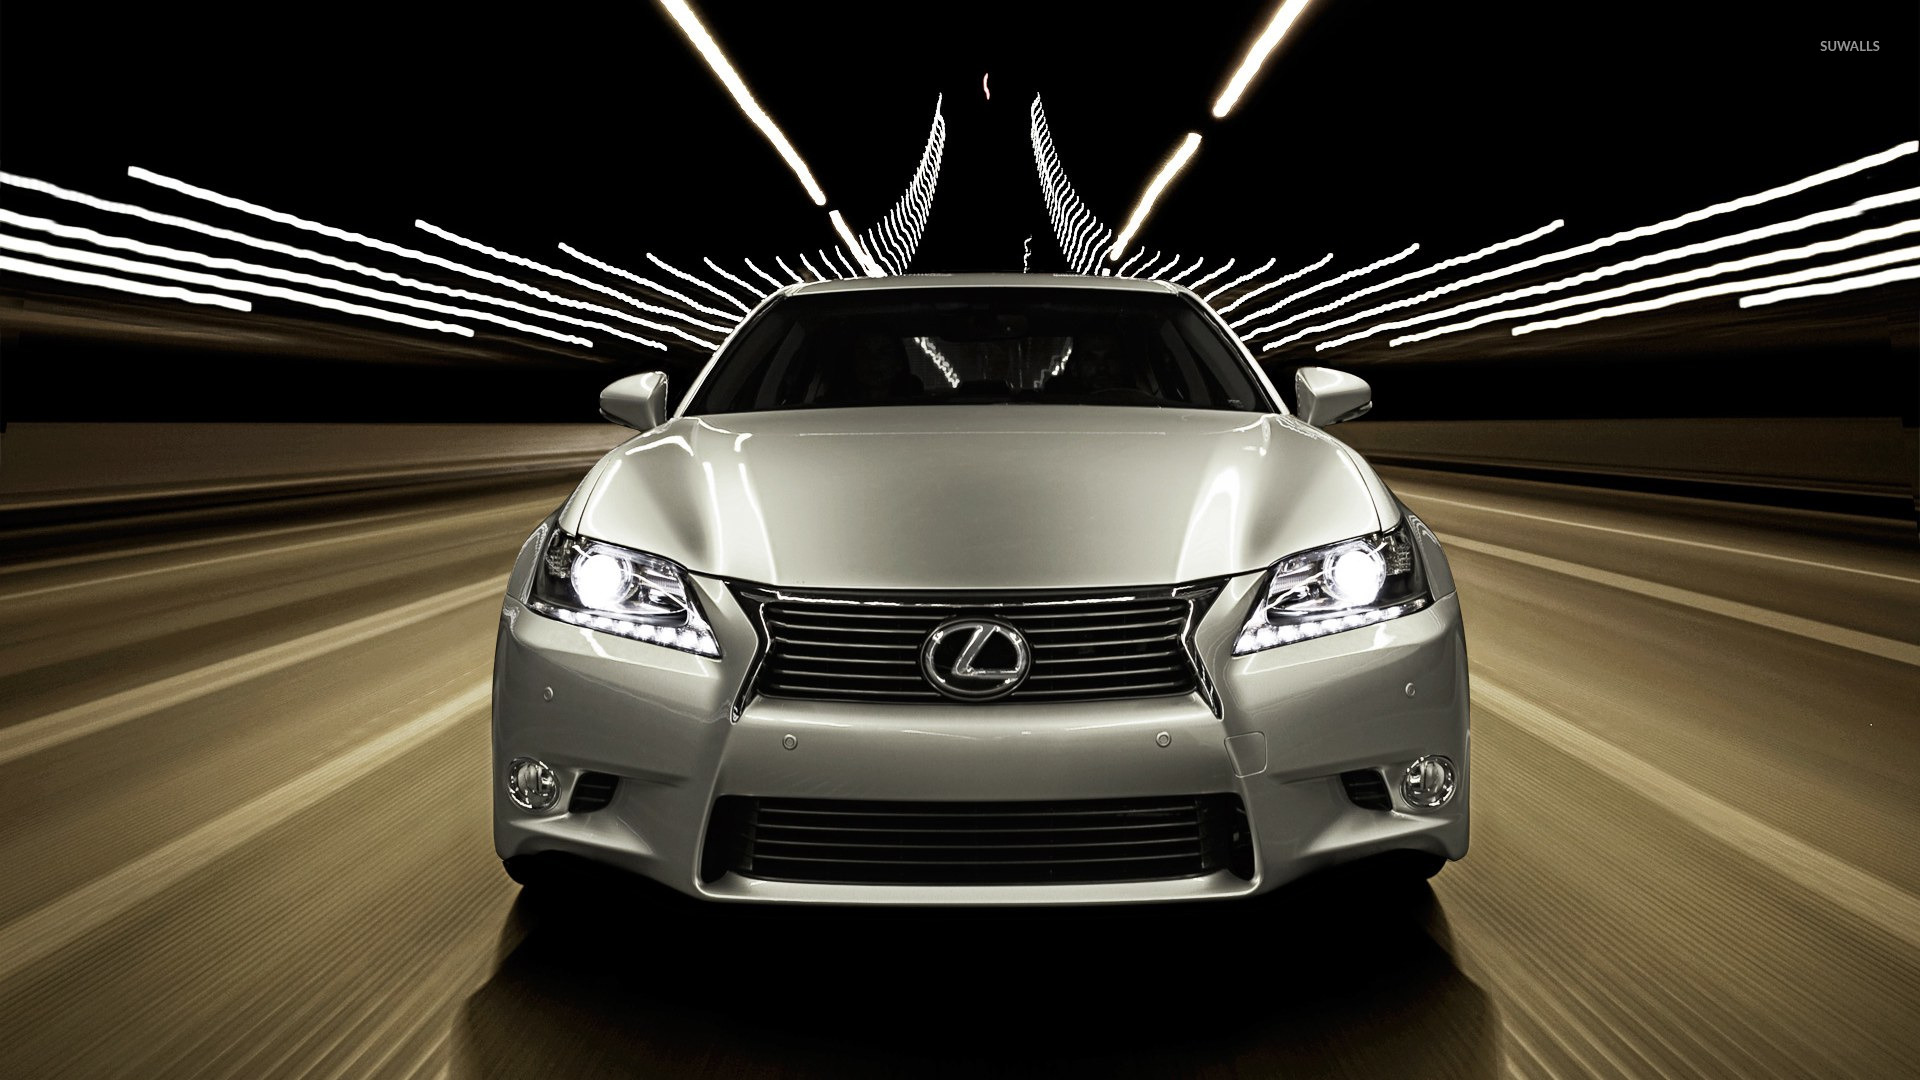 motor f trend cars first sport lexus rear gs test three